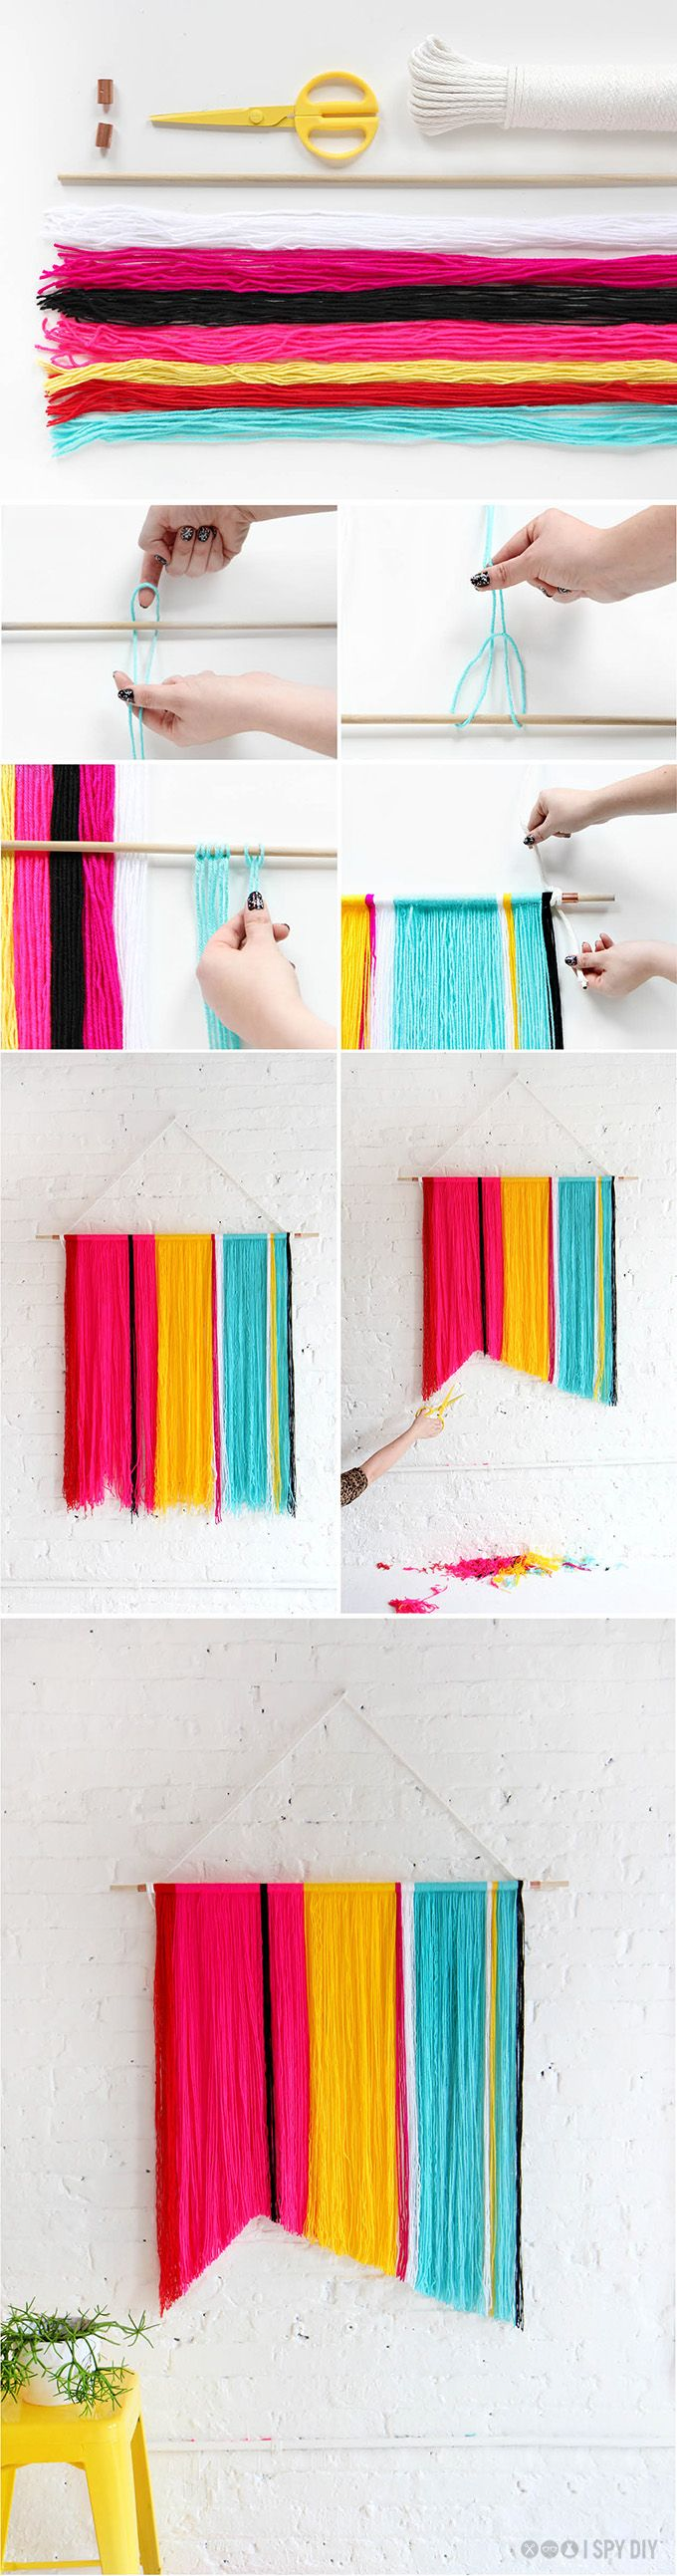 DIY: Yarn Wall Handing